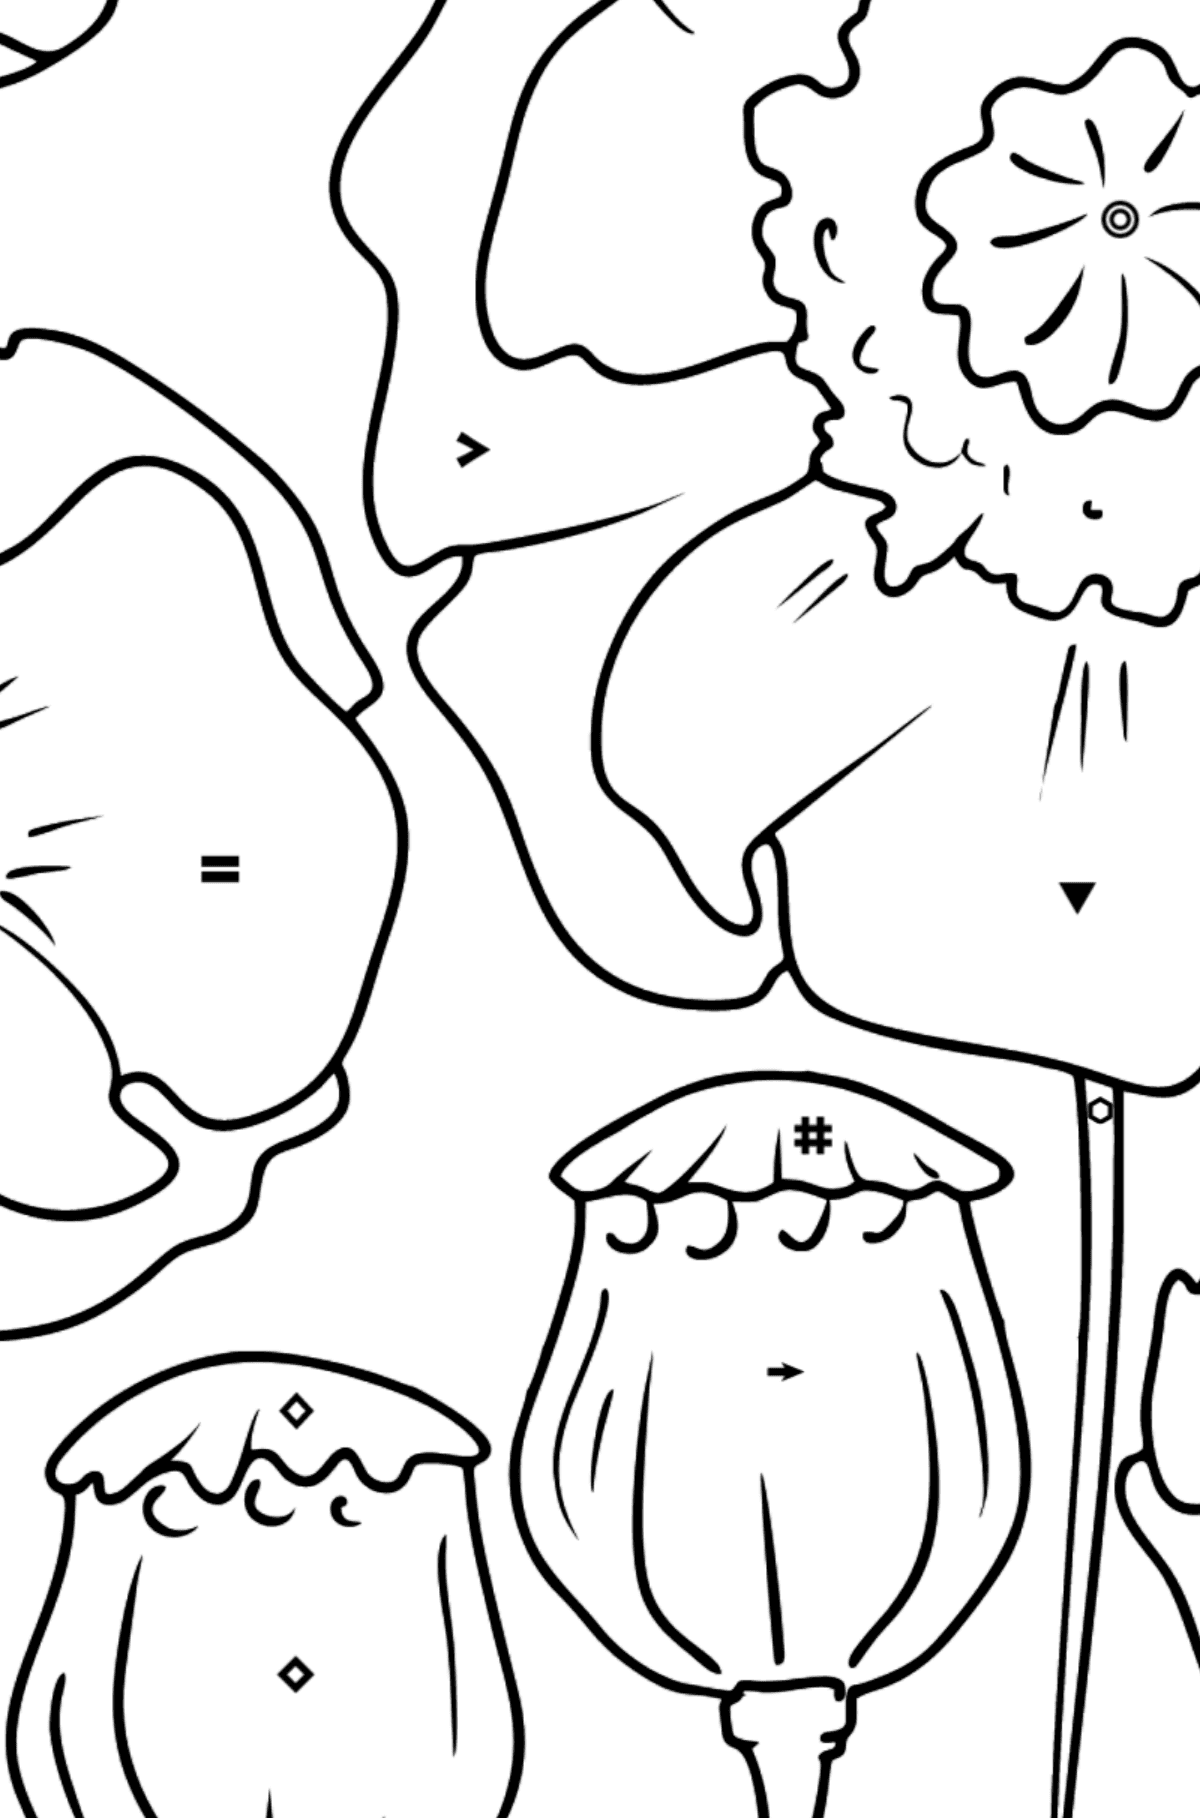 Flower Coloring Page - Poppies - Coloring by Symbols and Geometric Shapes for Kids